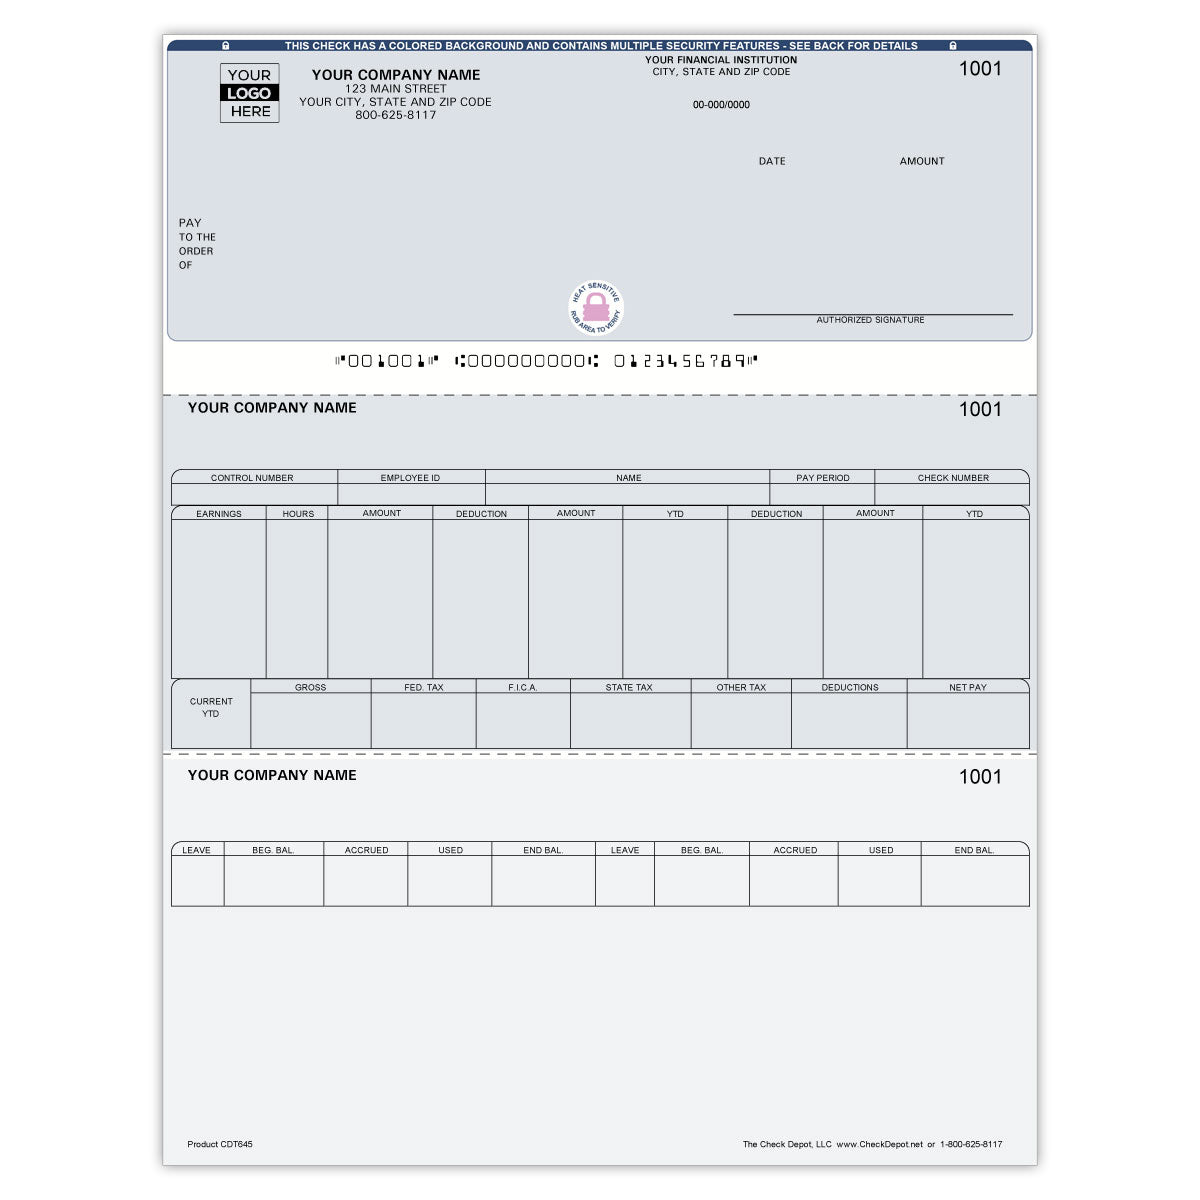 Laser Top Payroll Computer Checks - Check Depot